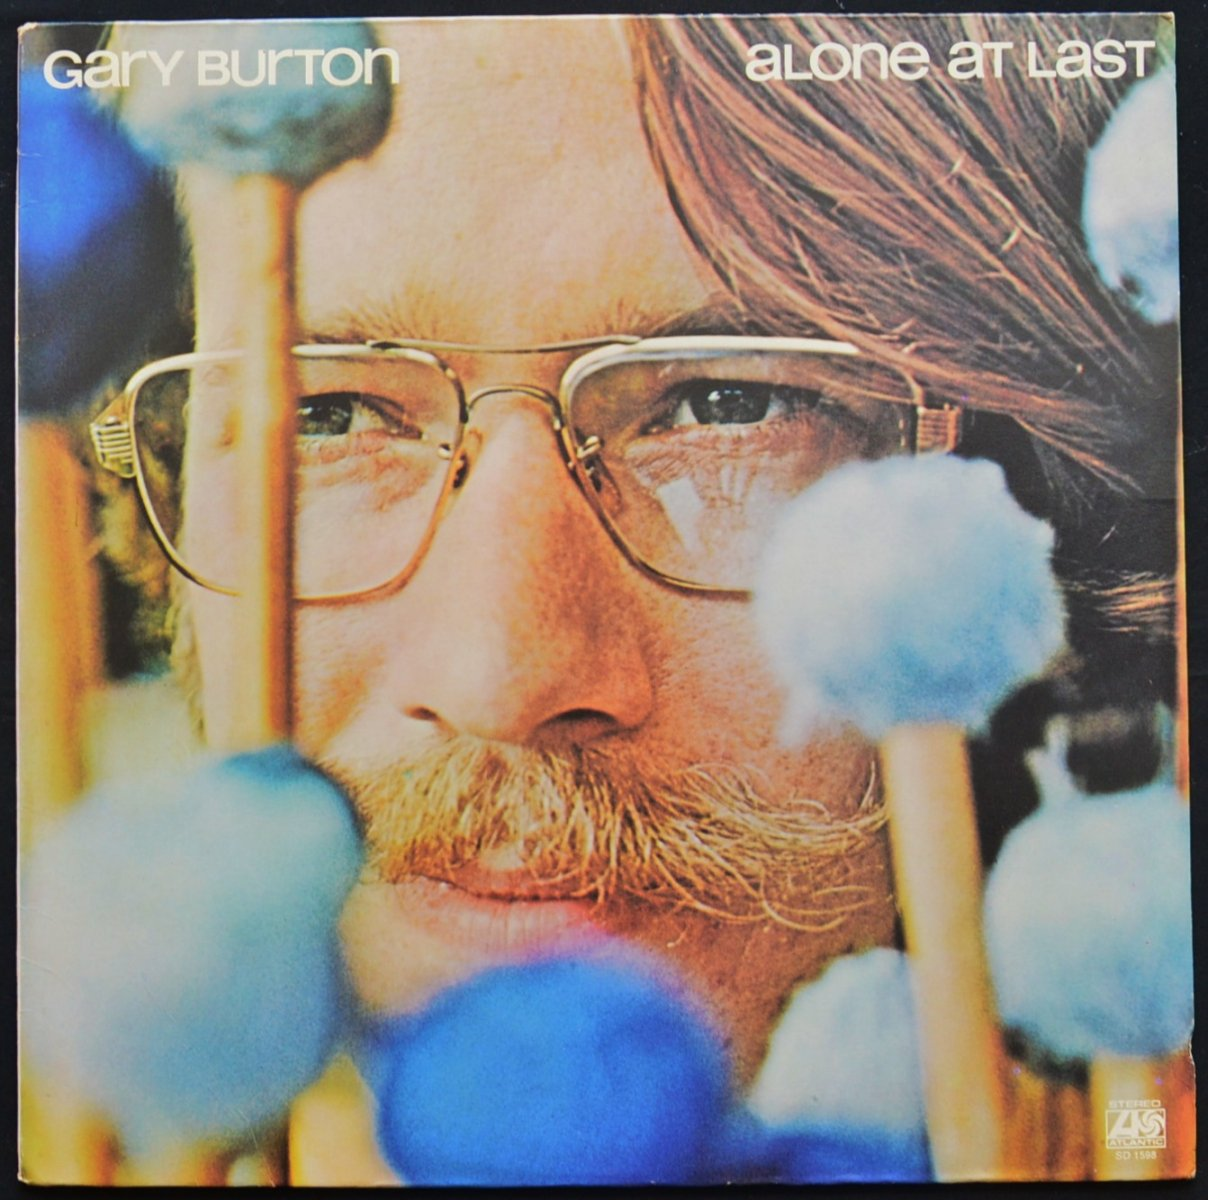 GARY BURTON ‎/ ALONE AT LAST (LP)